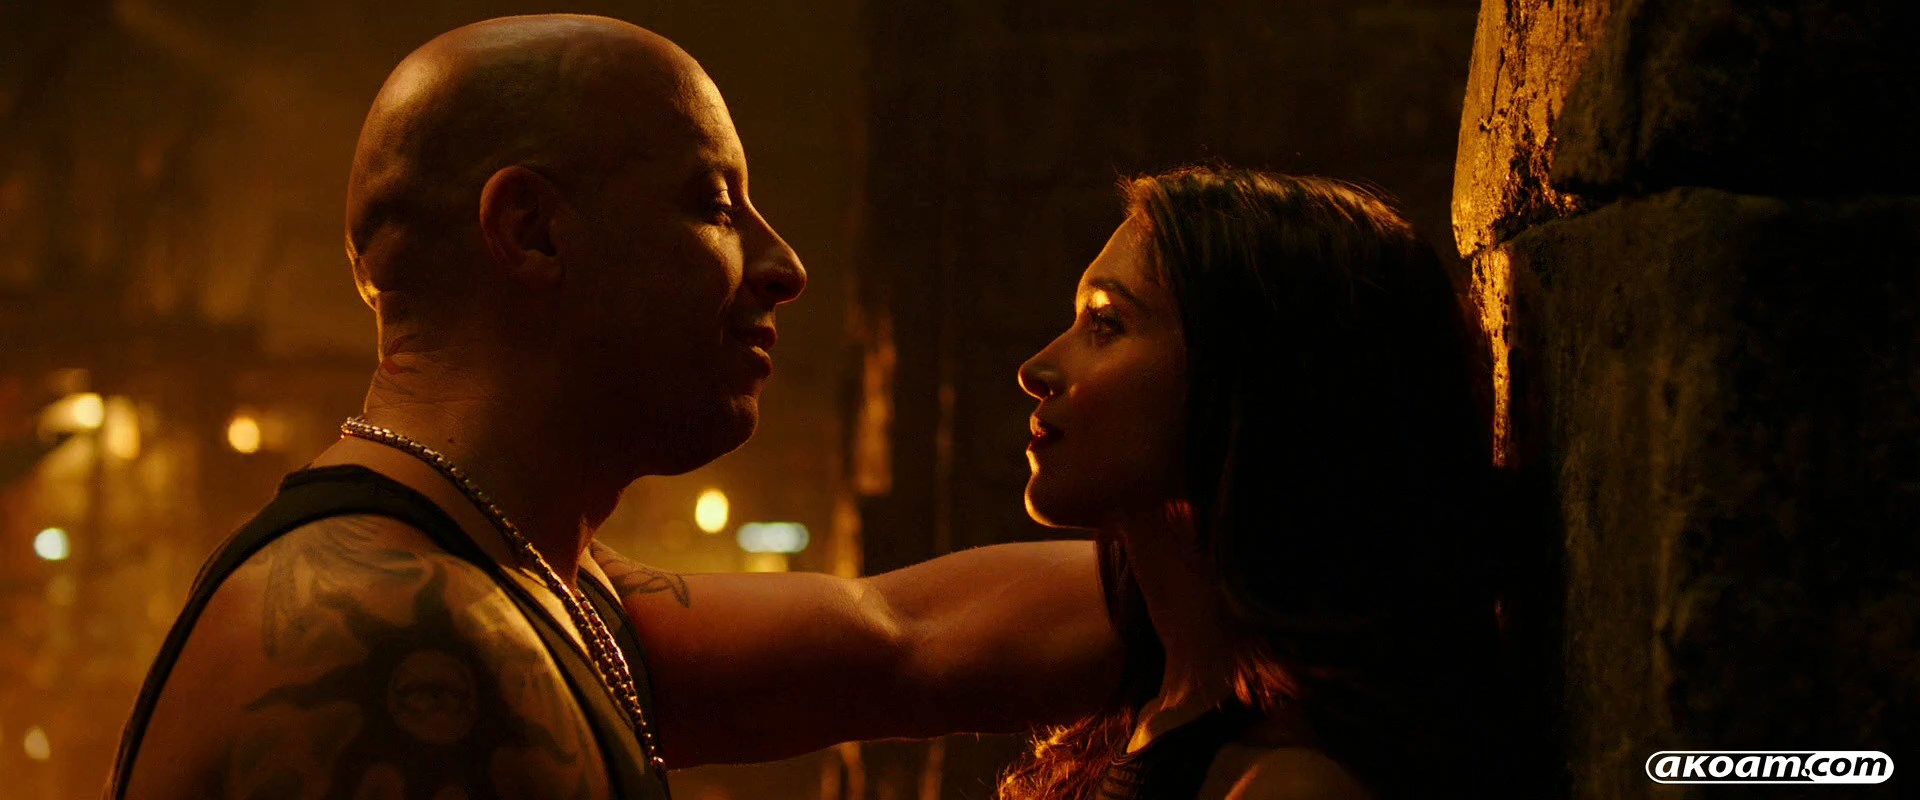 الاكشن,المغامرة,الاثارة,XXx: Return Of Xander Cage,إكس إكس إكس: عودة زاندر كايج,فين ديزل